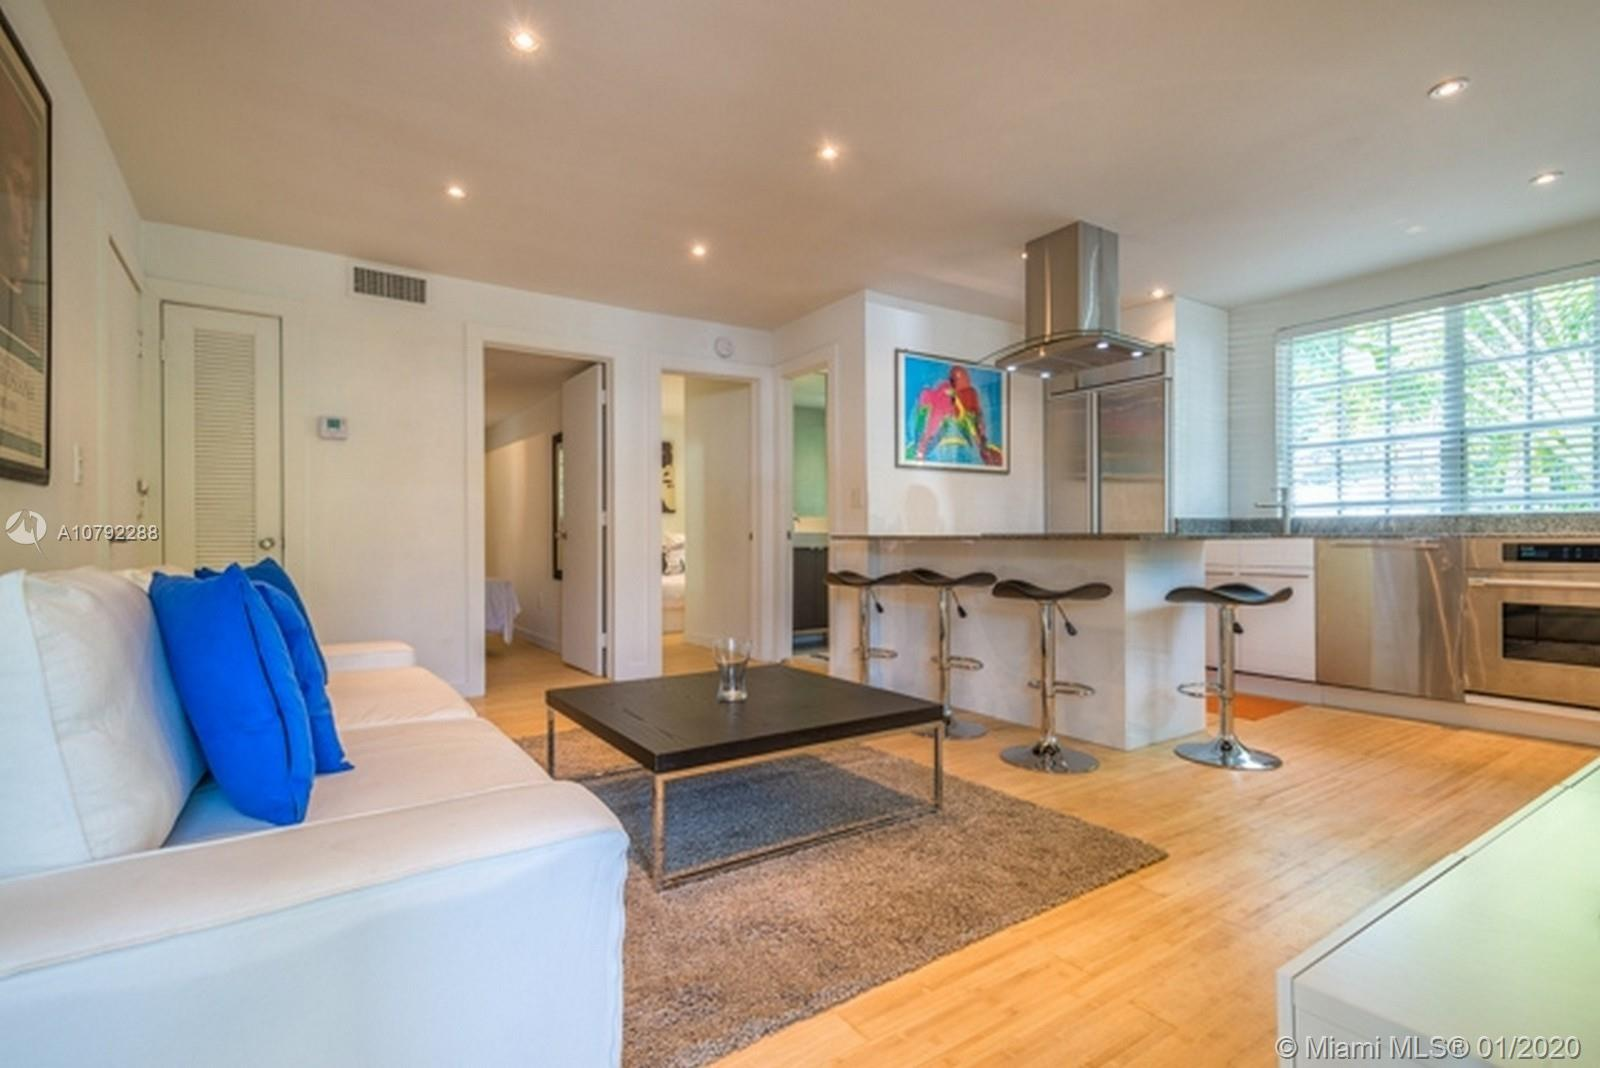 940  7th St #940A For Sale A10792288, FL